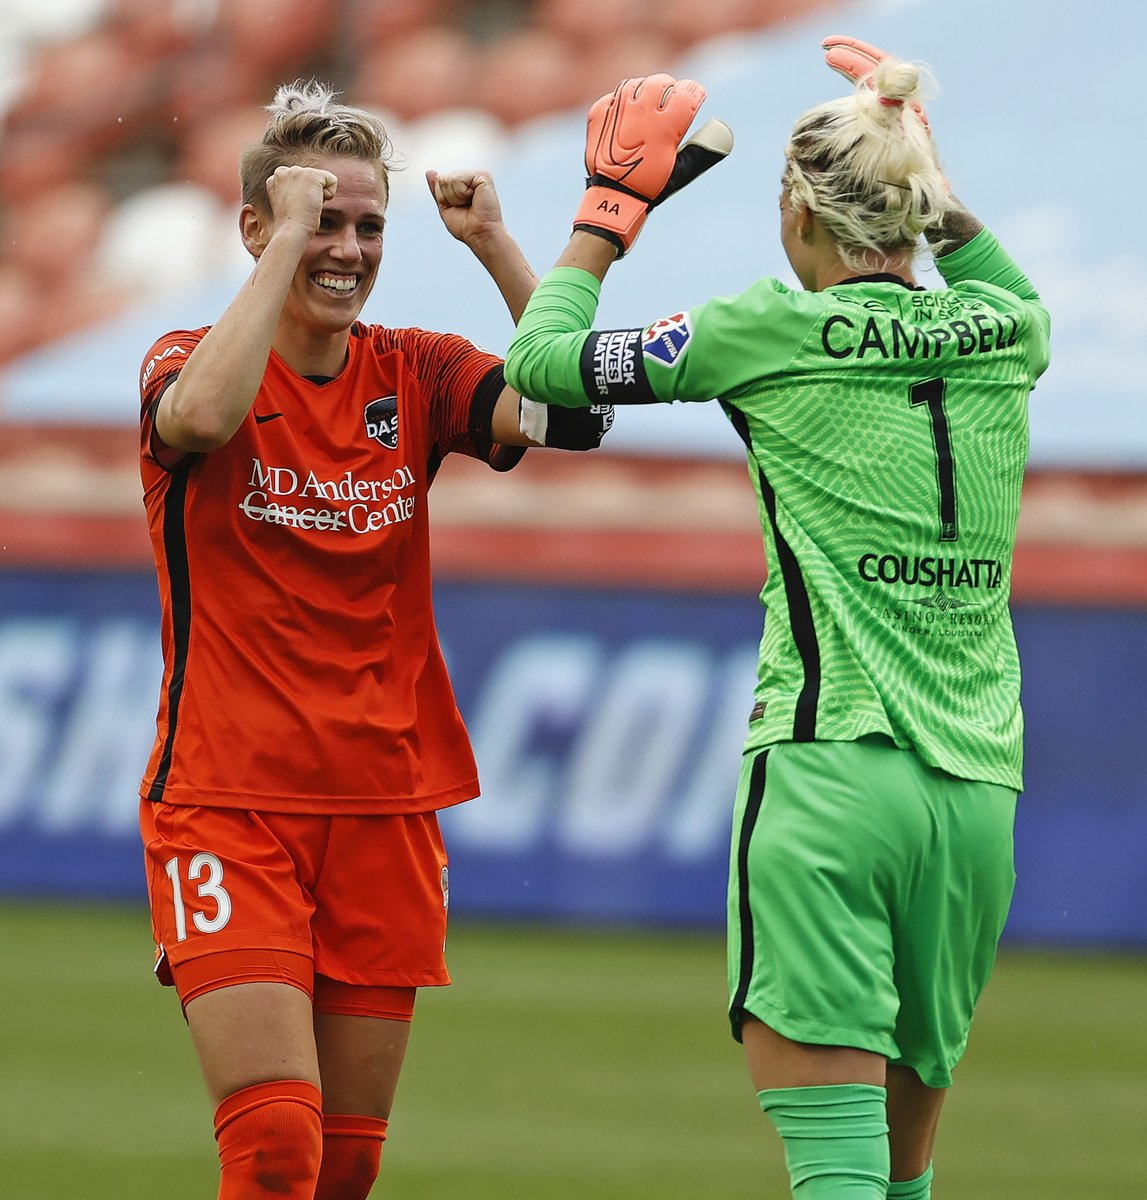 Oh hey, since we have you here, the @NWSL Challenge Cup Championship is Sunday at 12:30 pm ET on CBS!  @HoustonDash 🆚 @chiredstarsPR